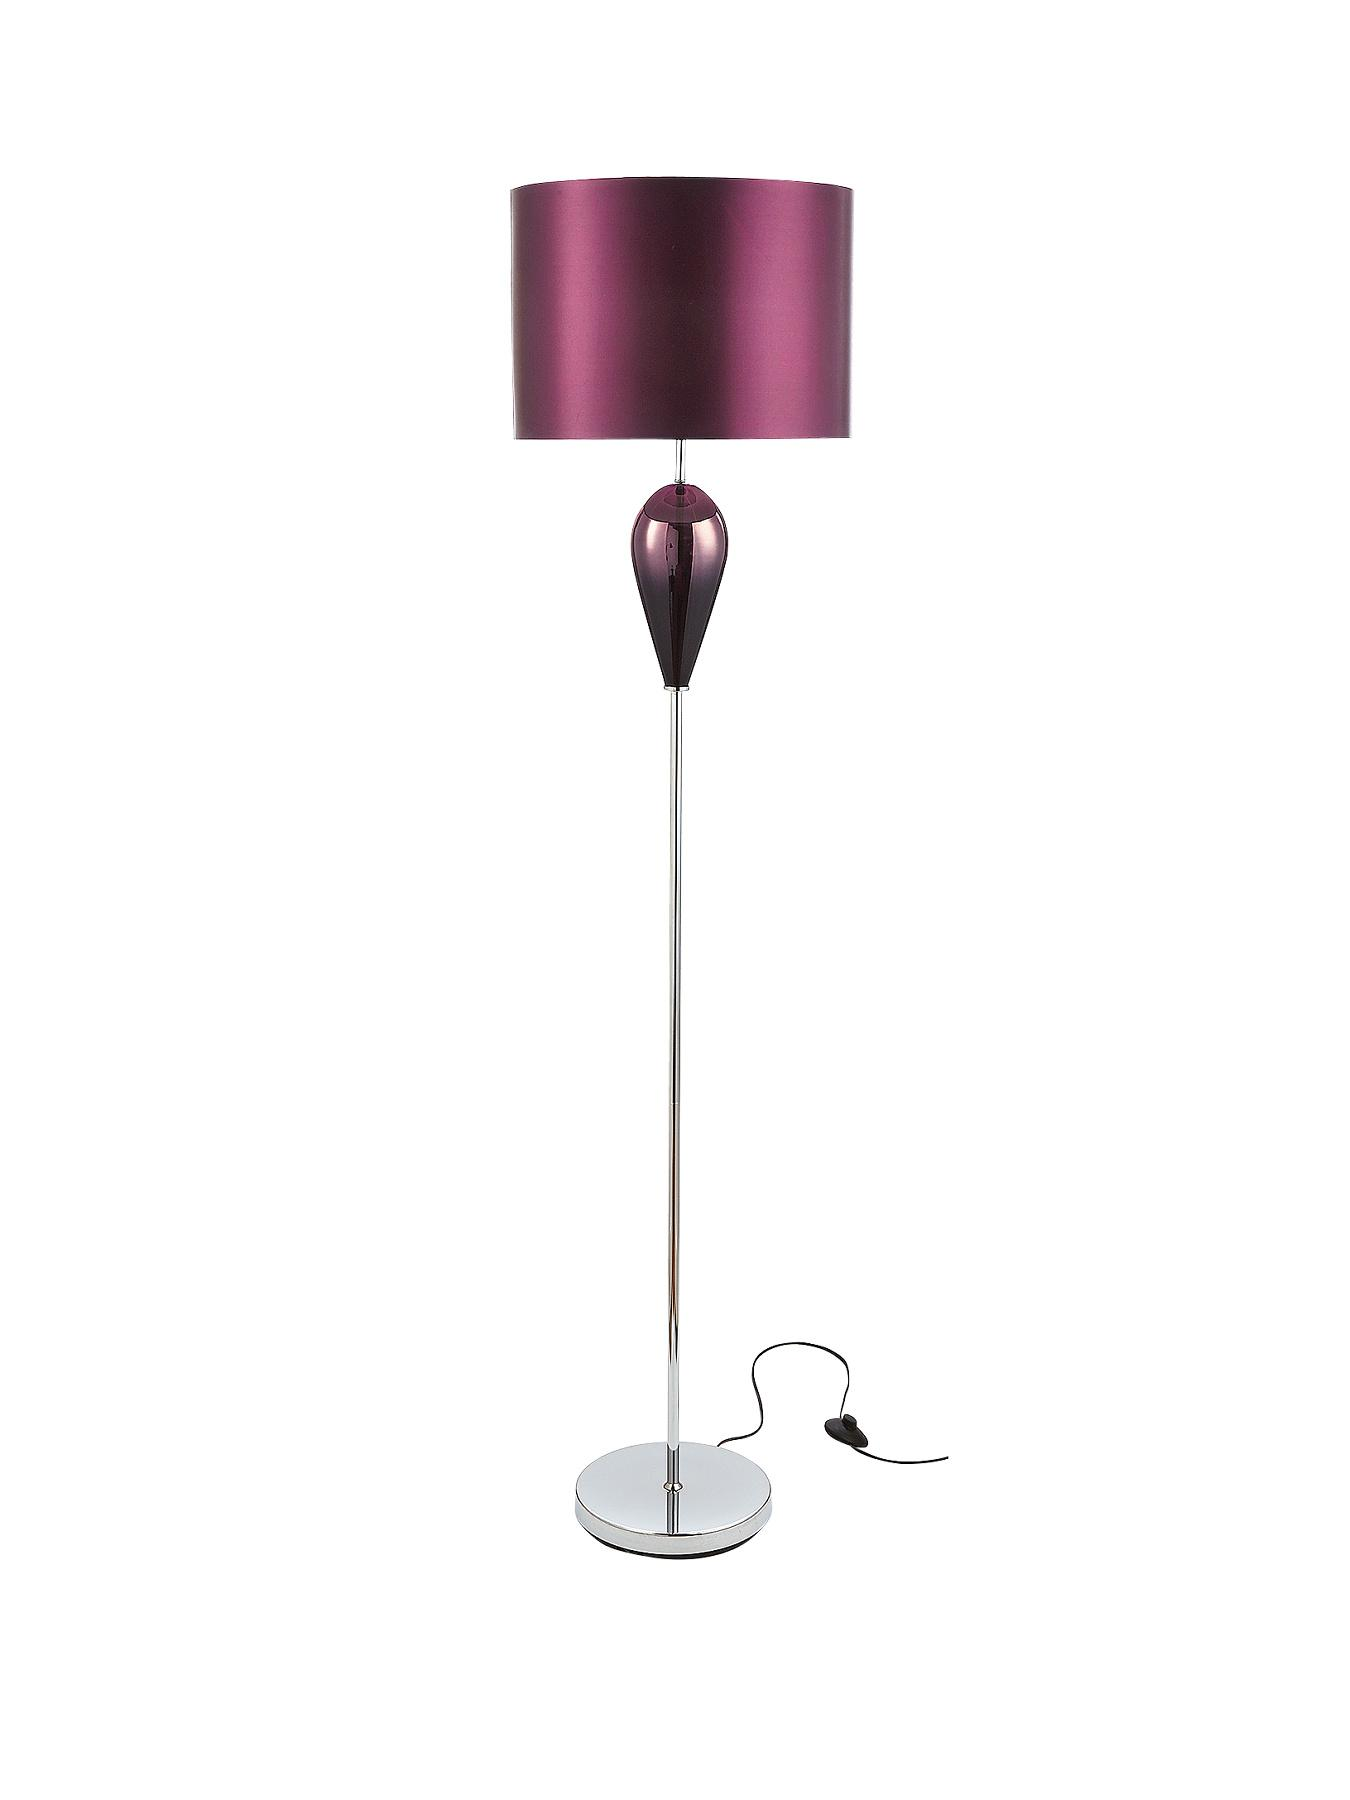 Madrid Floor Lamp - Plum, Plum,Black